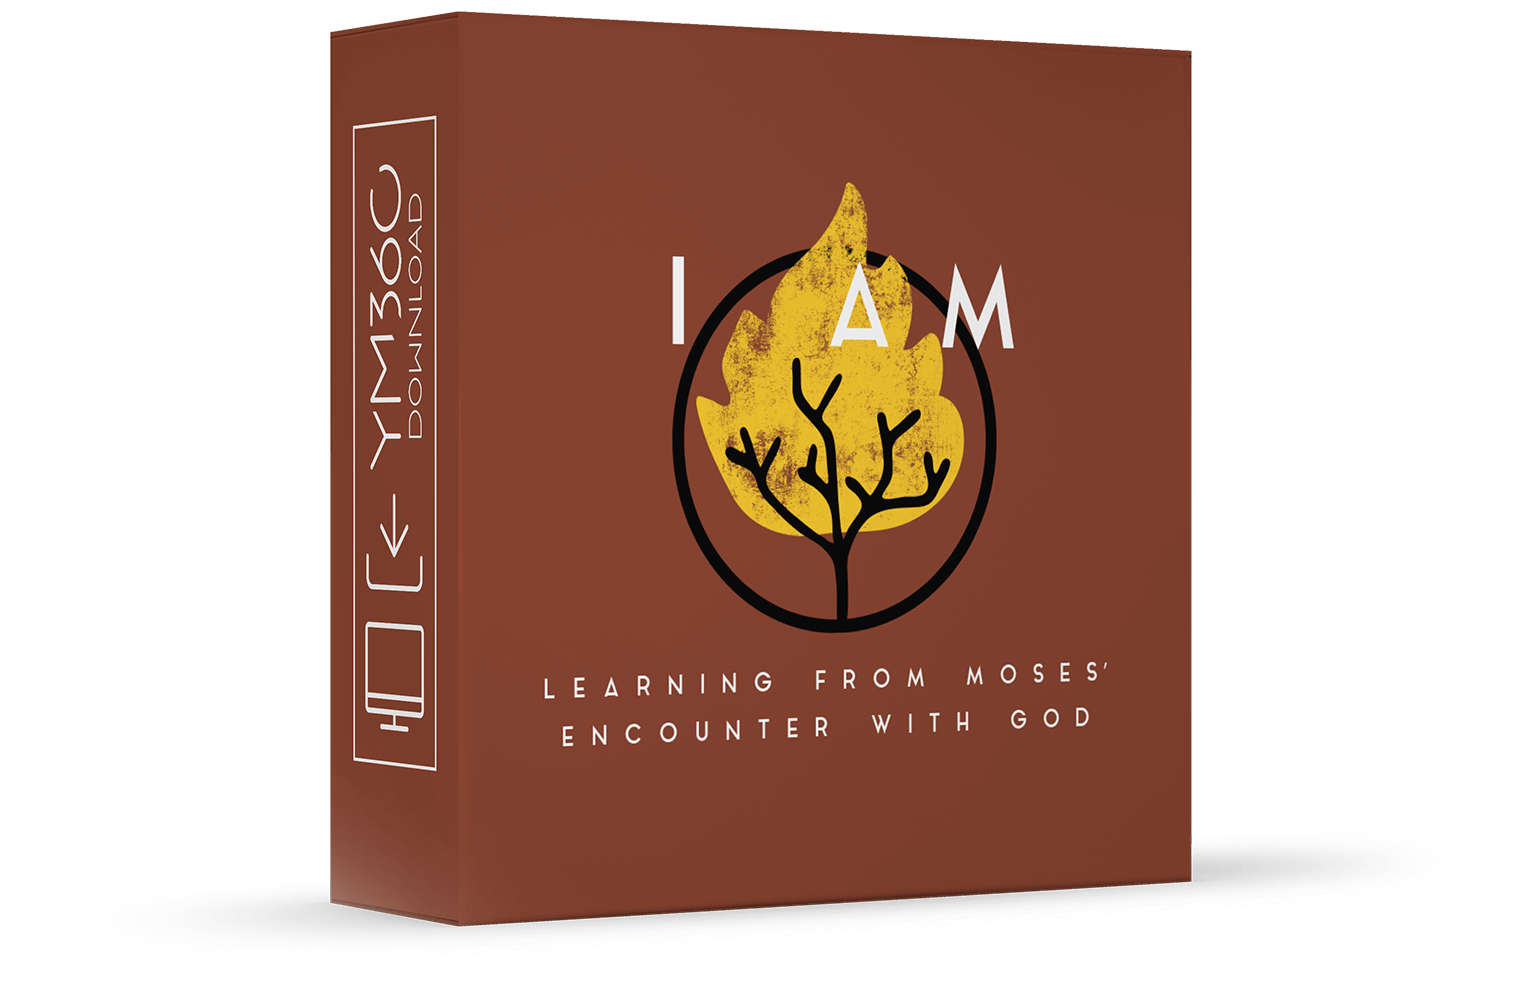 I Am: Learning From Moses' Encounter With God